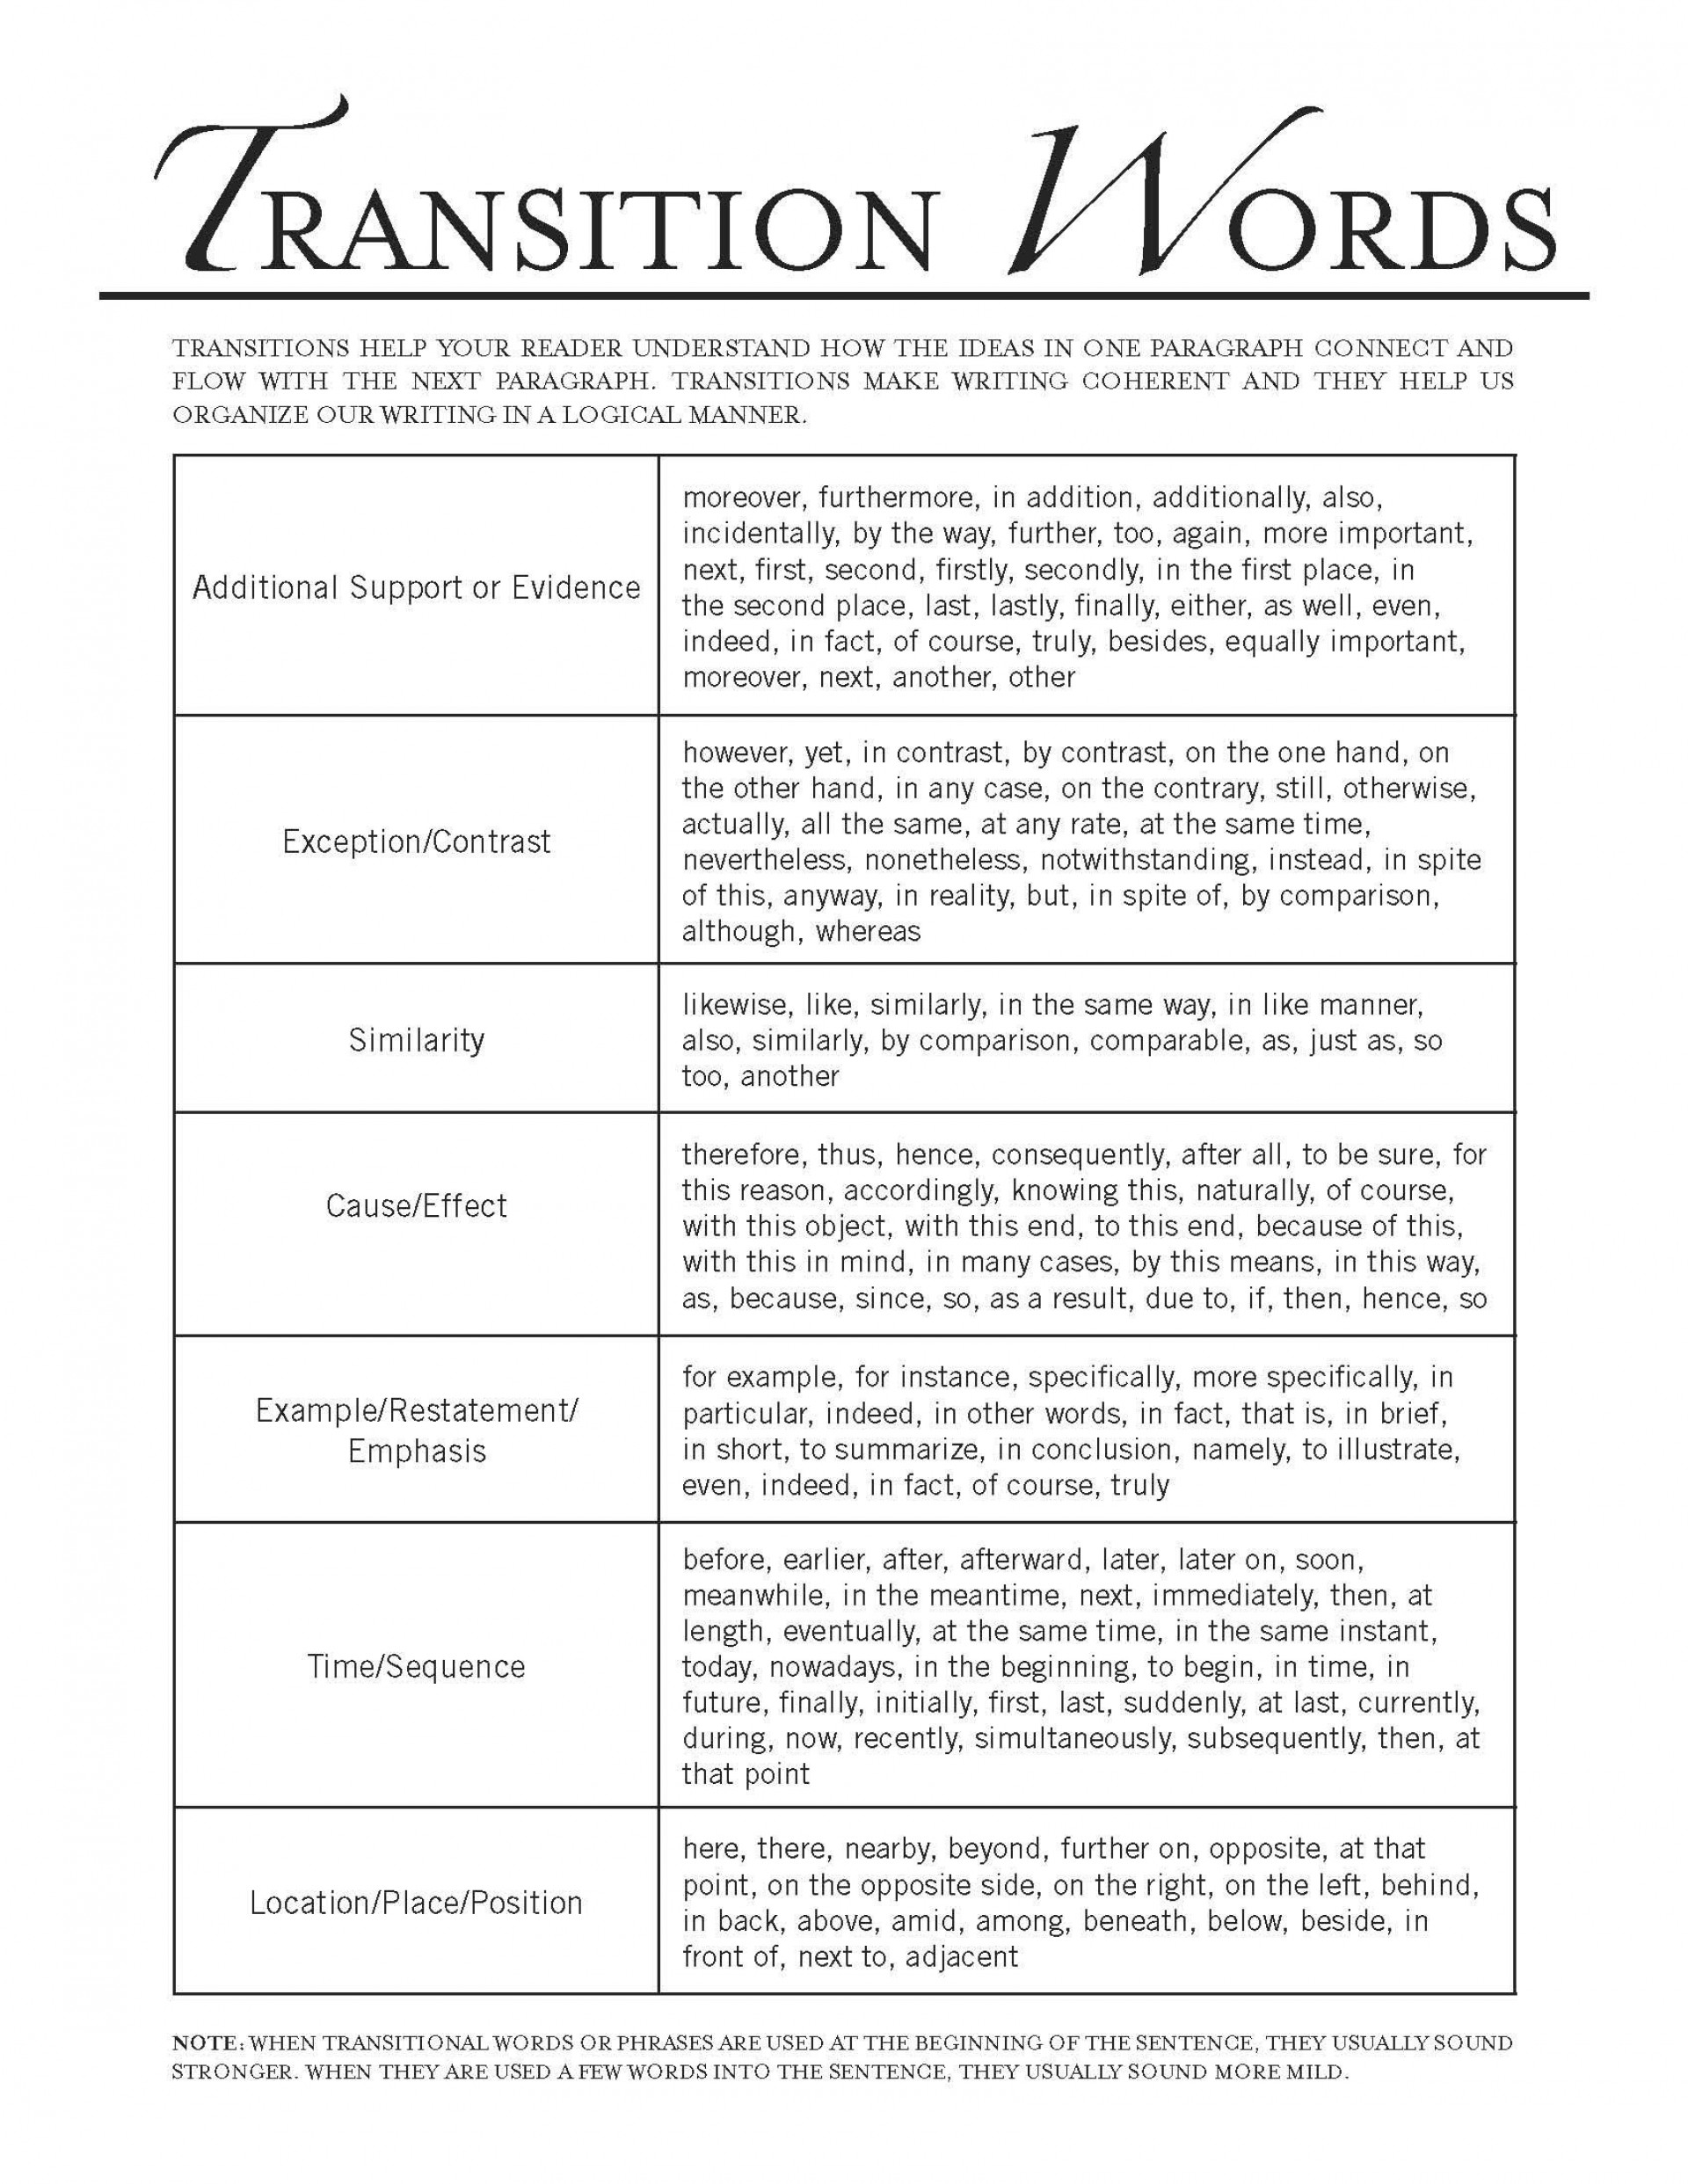 002 Essay Example Transition Words For Essays Rare And Phrases List Pdf 4th Grade Of Writing 1920